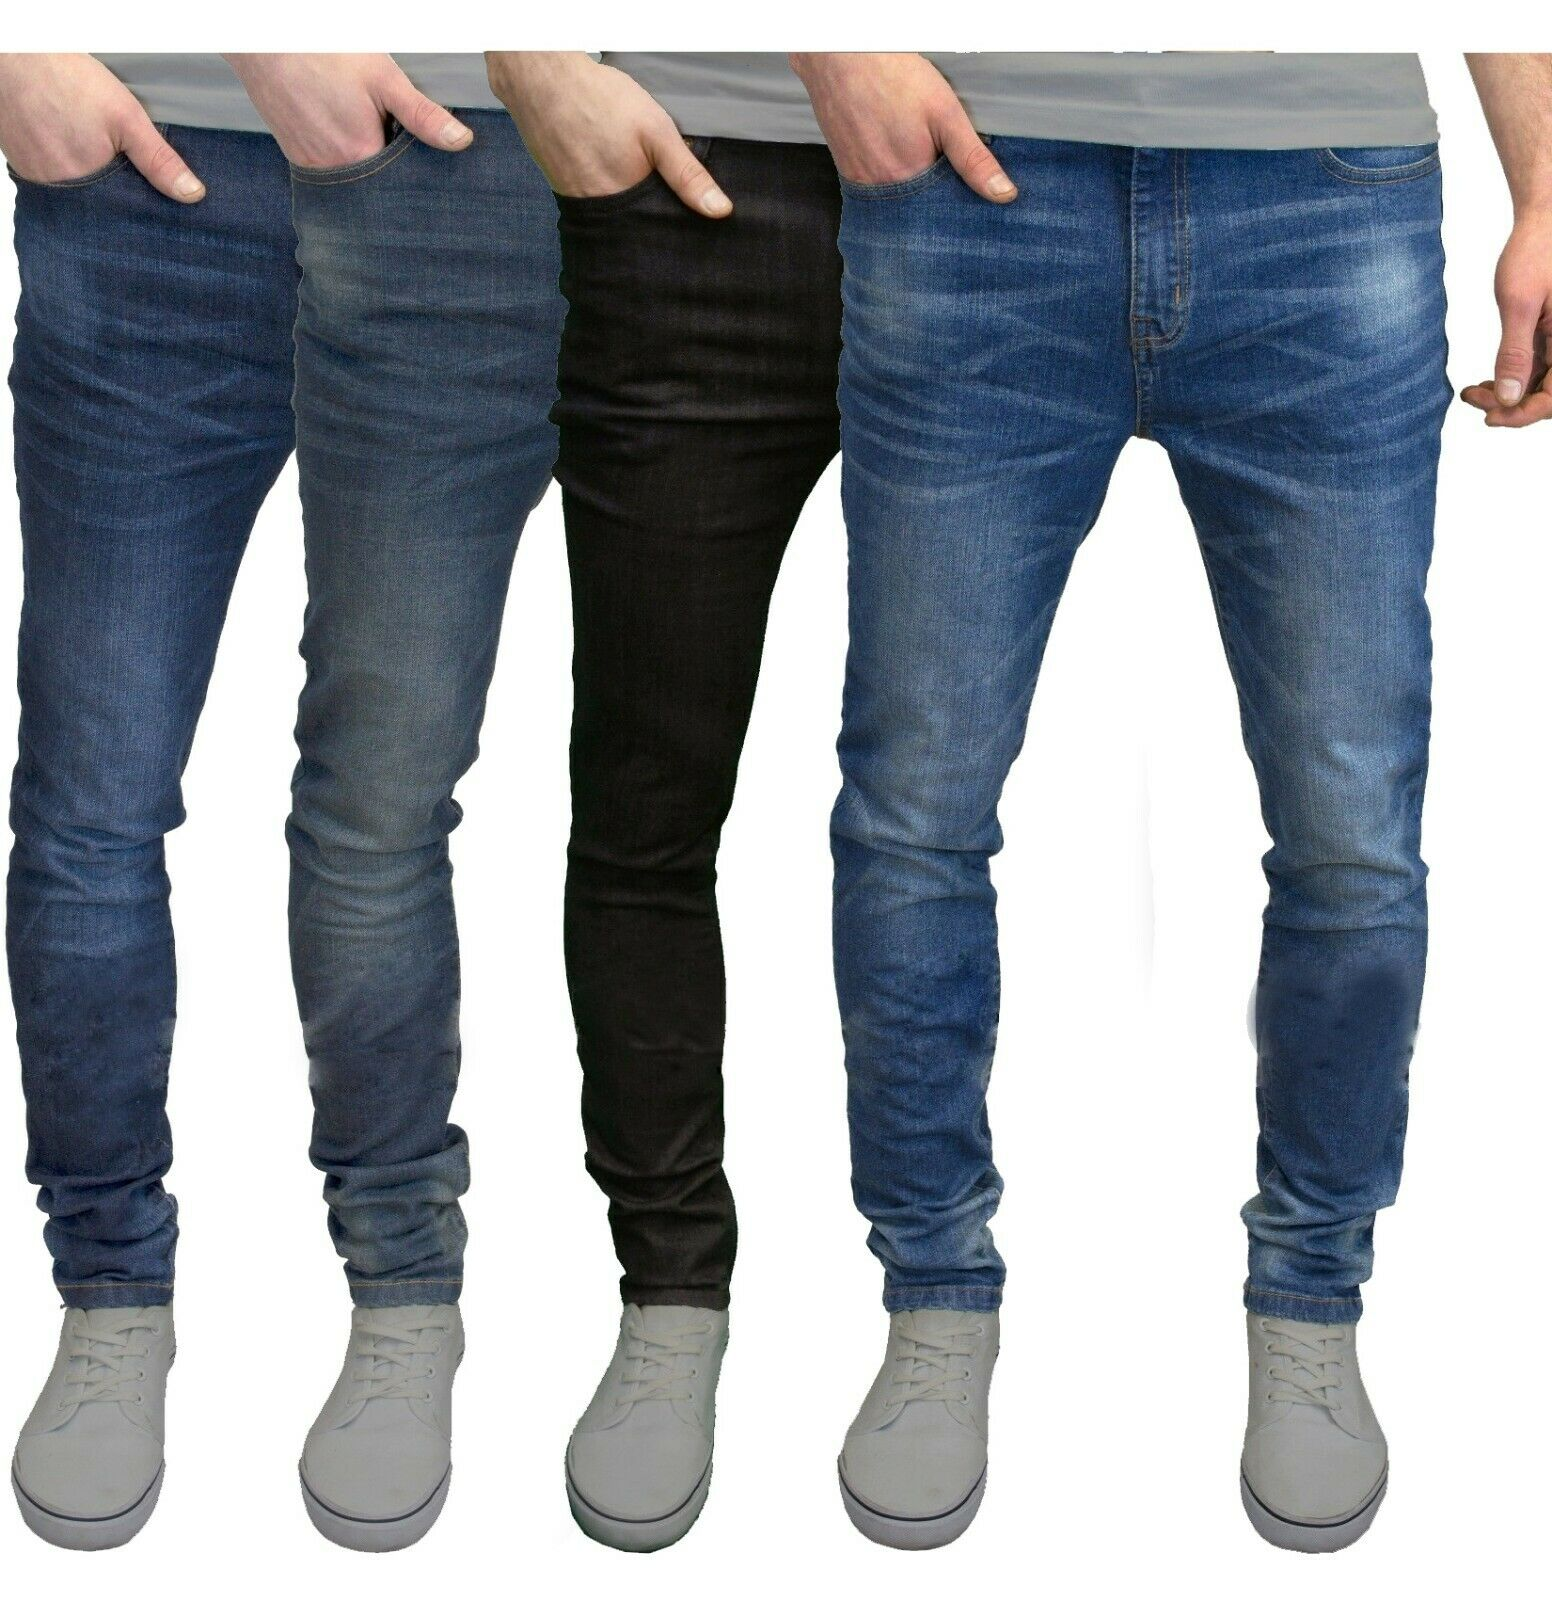 Tencel Hyperflex New Technology of Ultimate Comfort DFR89 PREMIUM DENIM Parker Jean Casual 5 Pocket Style